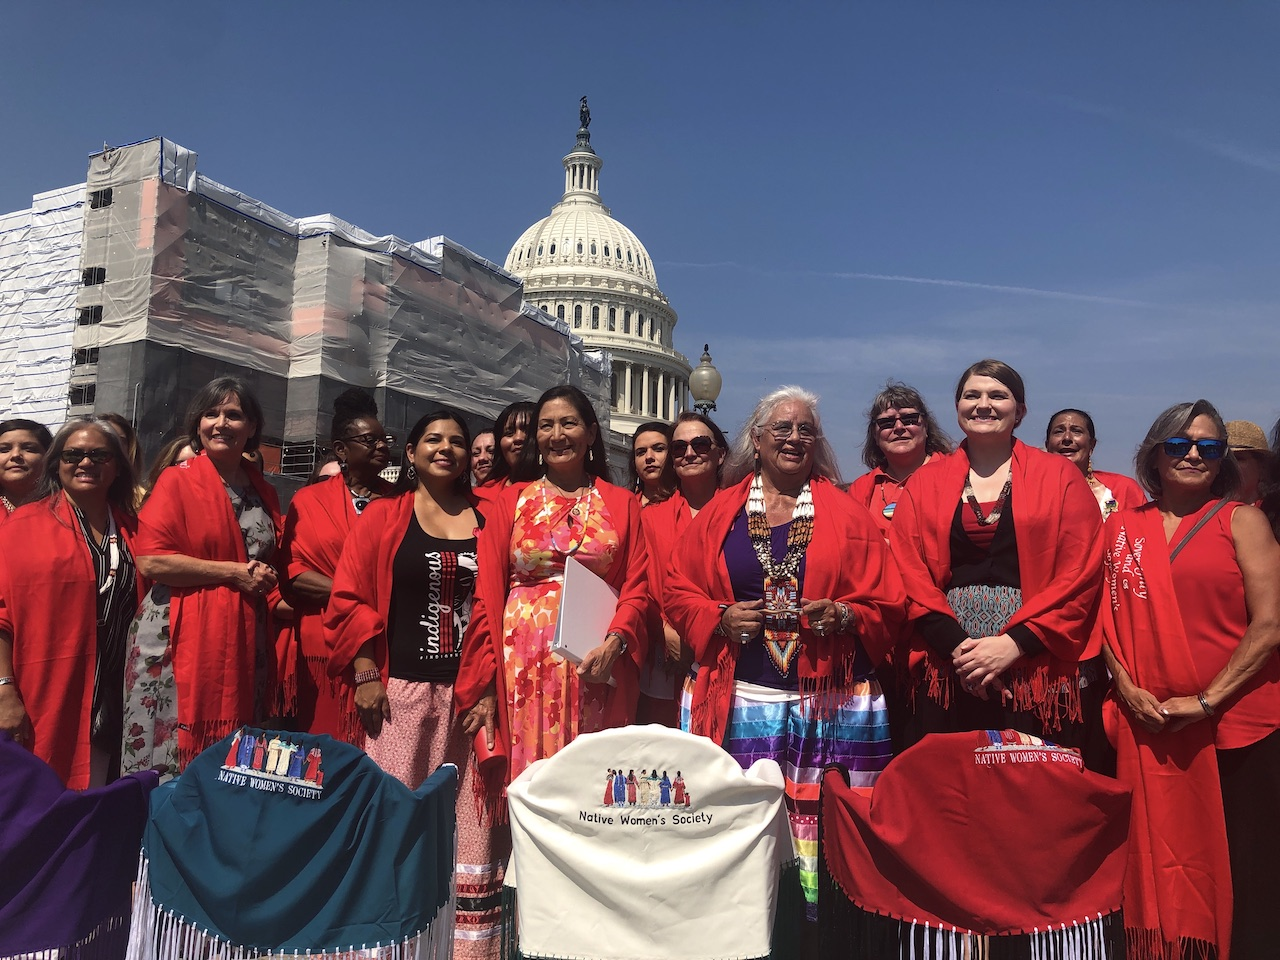 RECAP: Sovereignty and Native Women's Safety at US Capitol